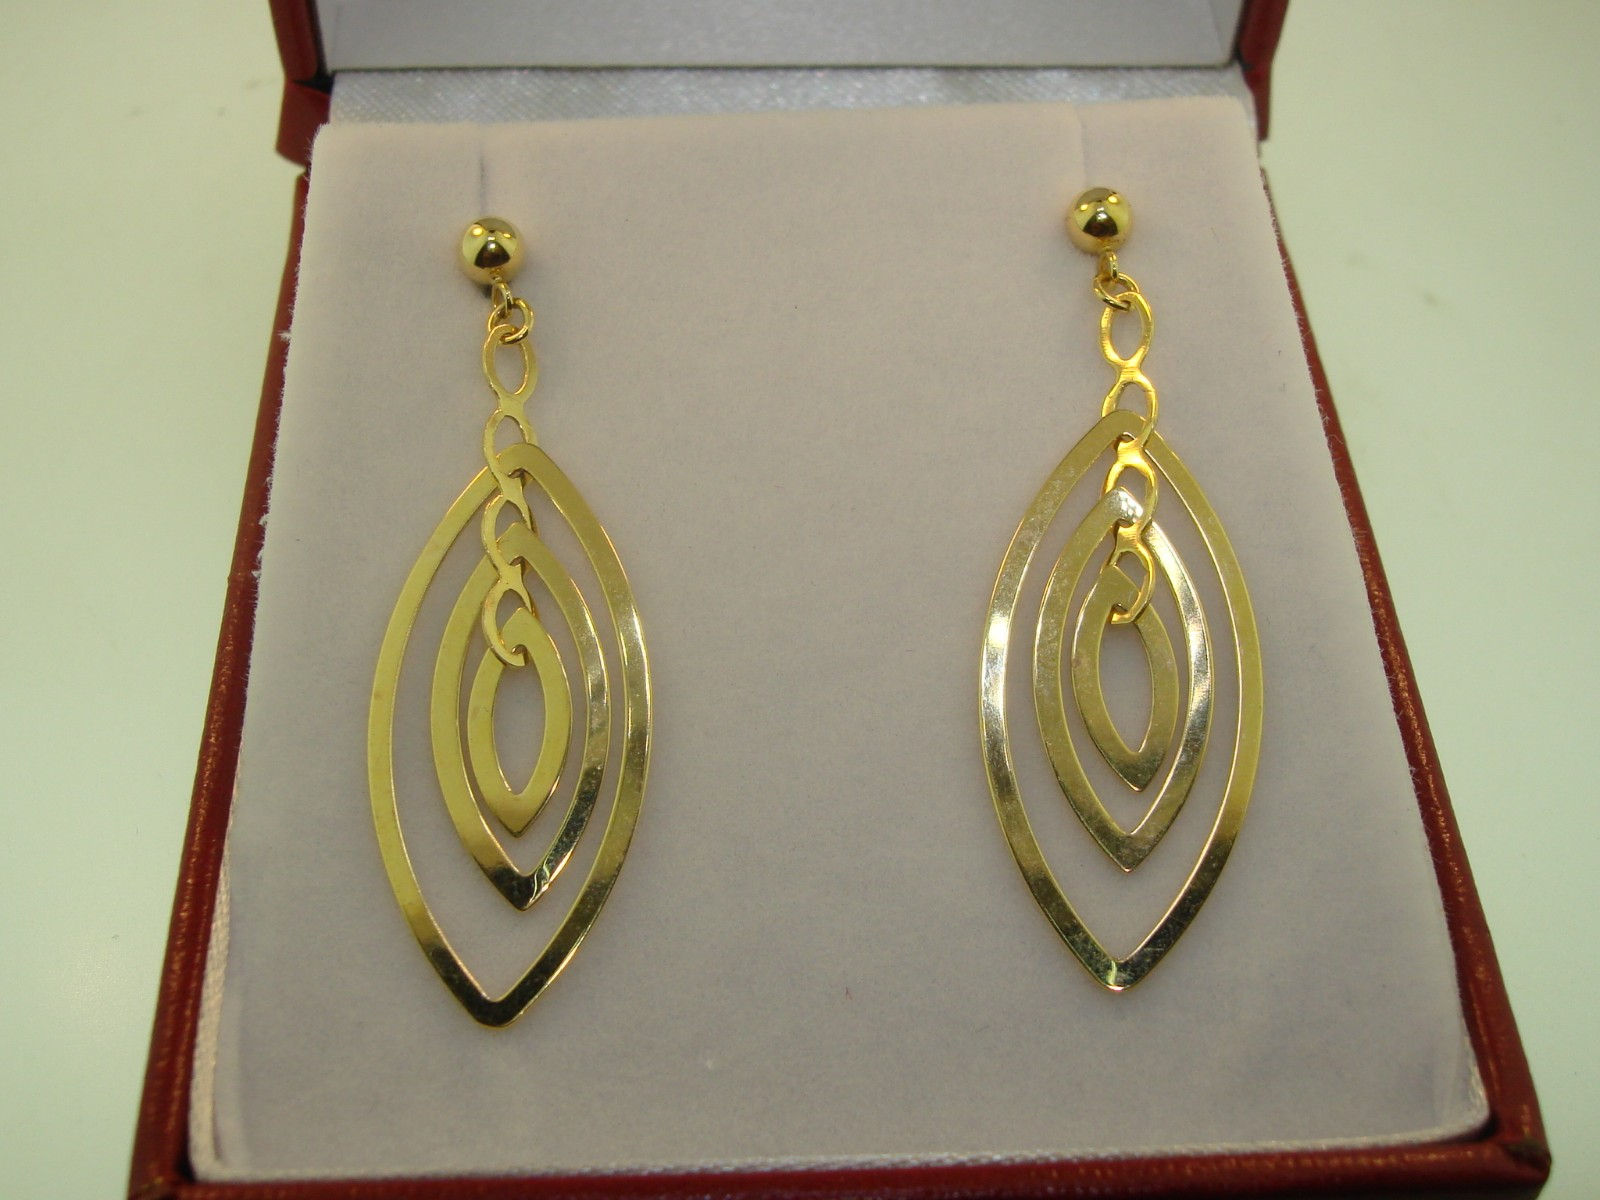 BEAUTIFUL NEW 14K SOLID GOLD DANGLE EARRINGS! - Federal Coin Exchange